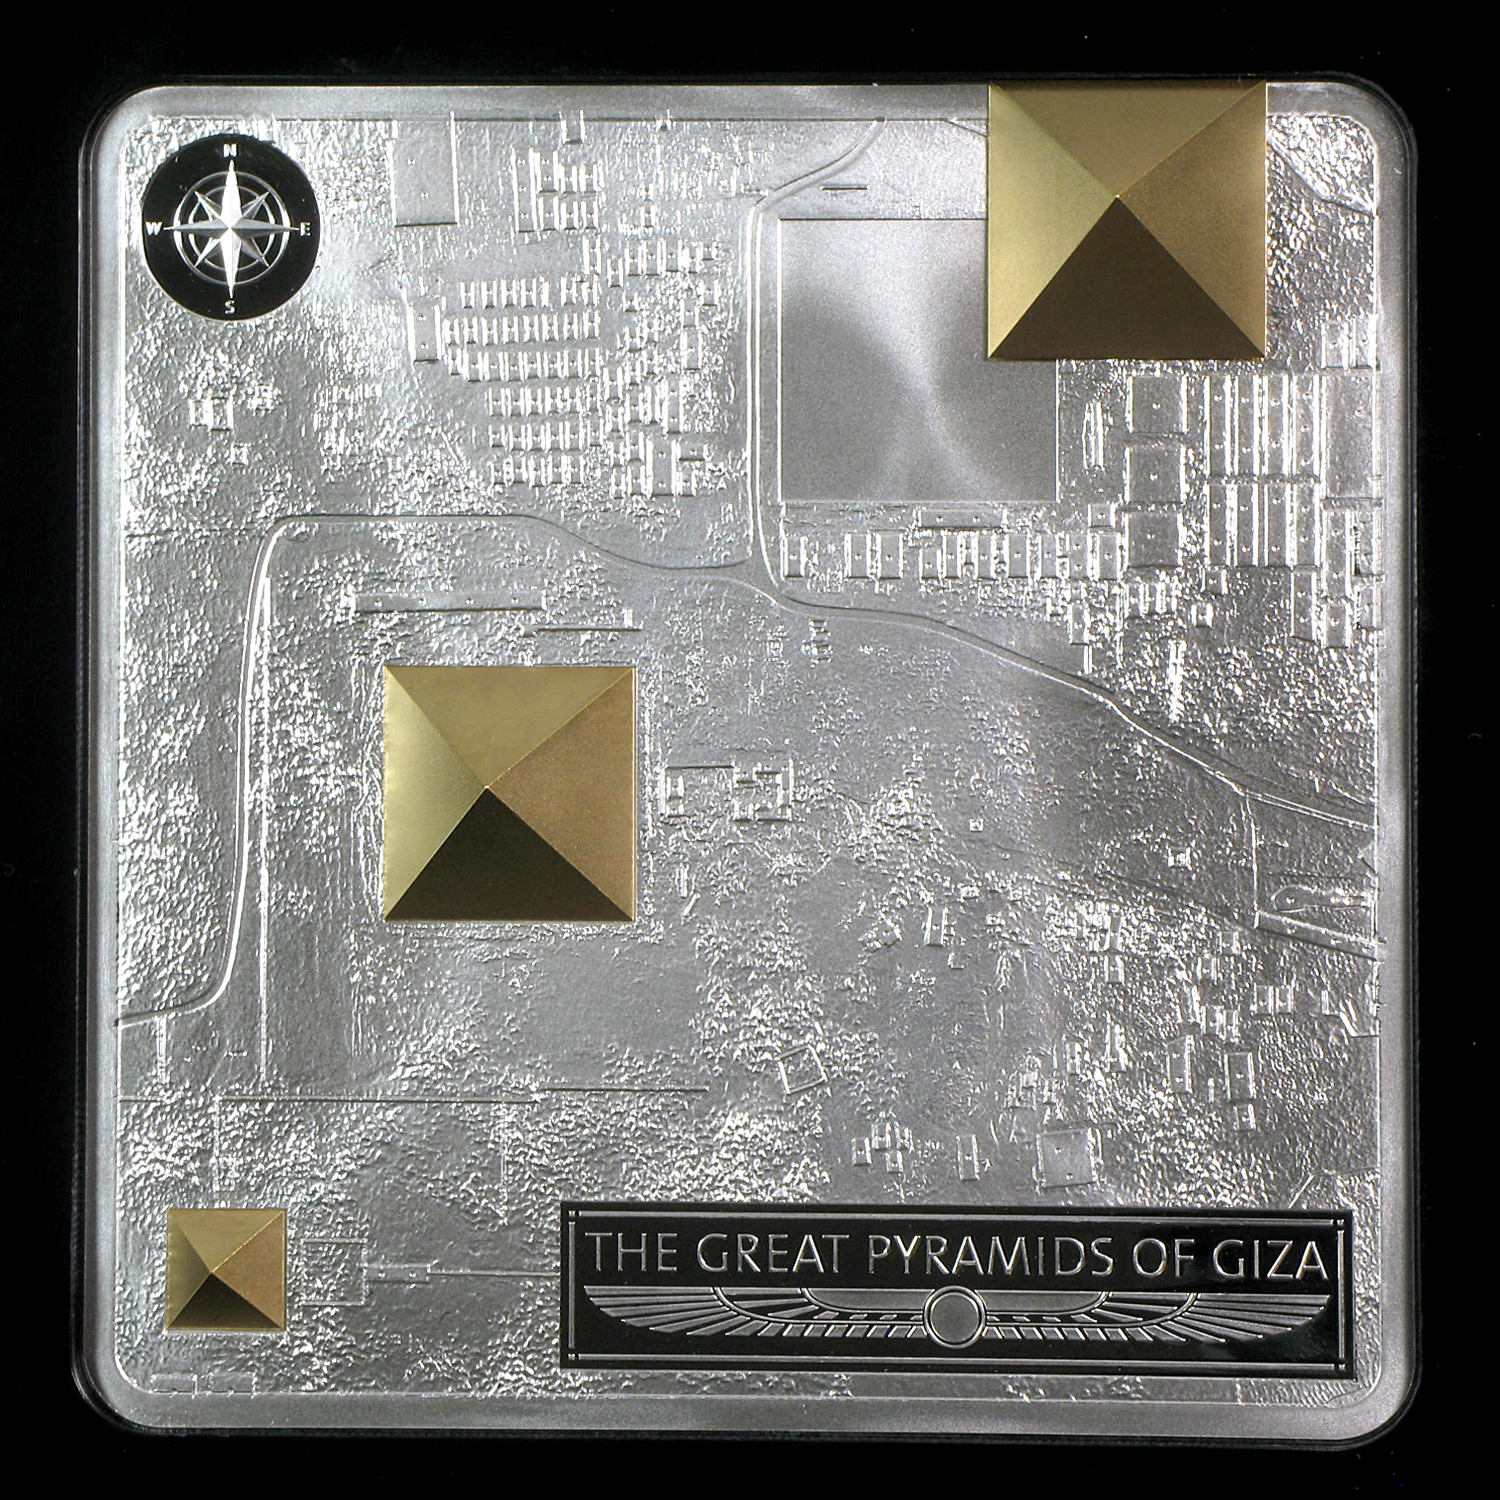 2012 Fiji Proof Silver $50 Great Pyramids of Giza 3D Landscape